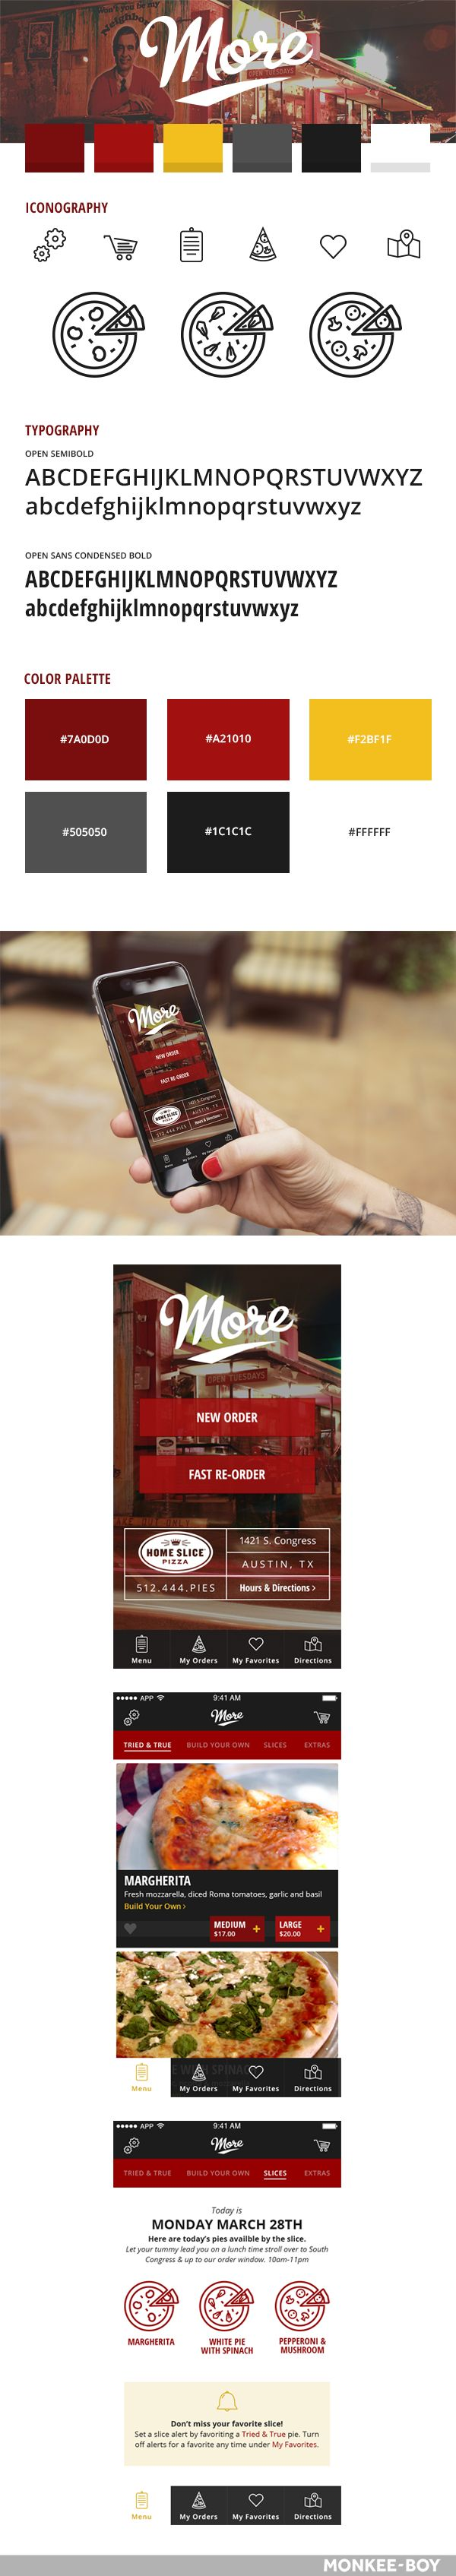 More Home Slice App #StyleGuide #ux #ui #mobile #design